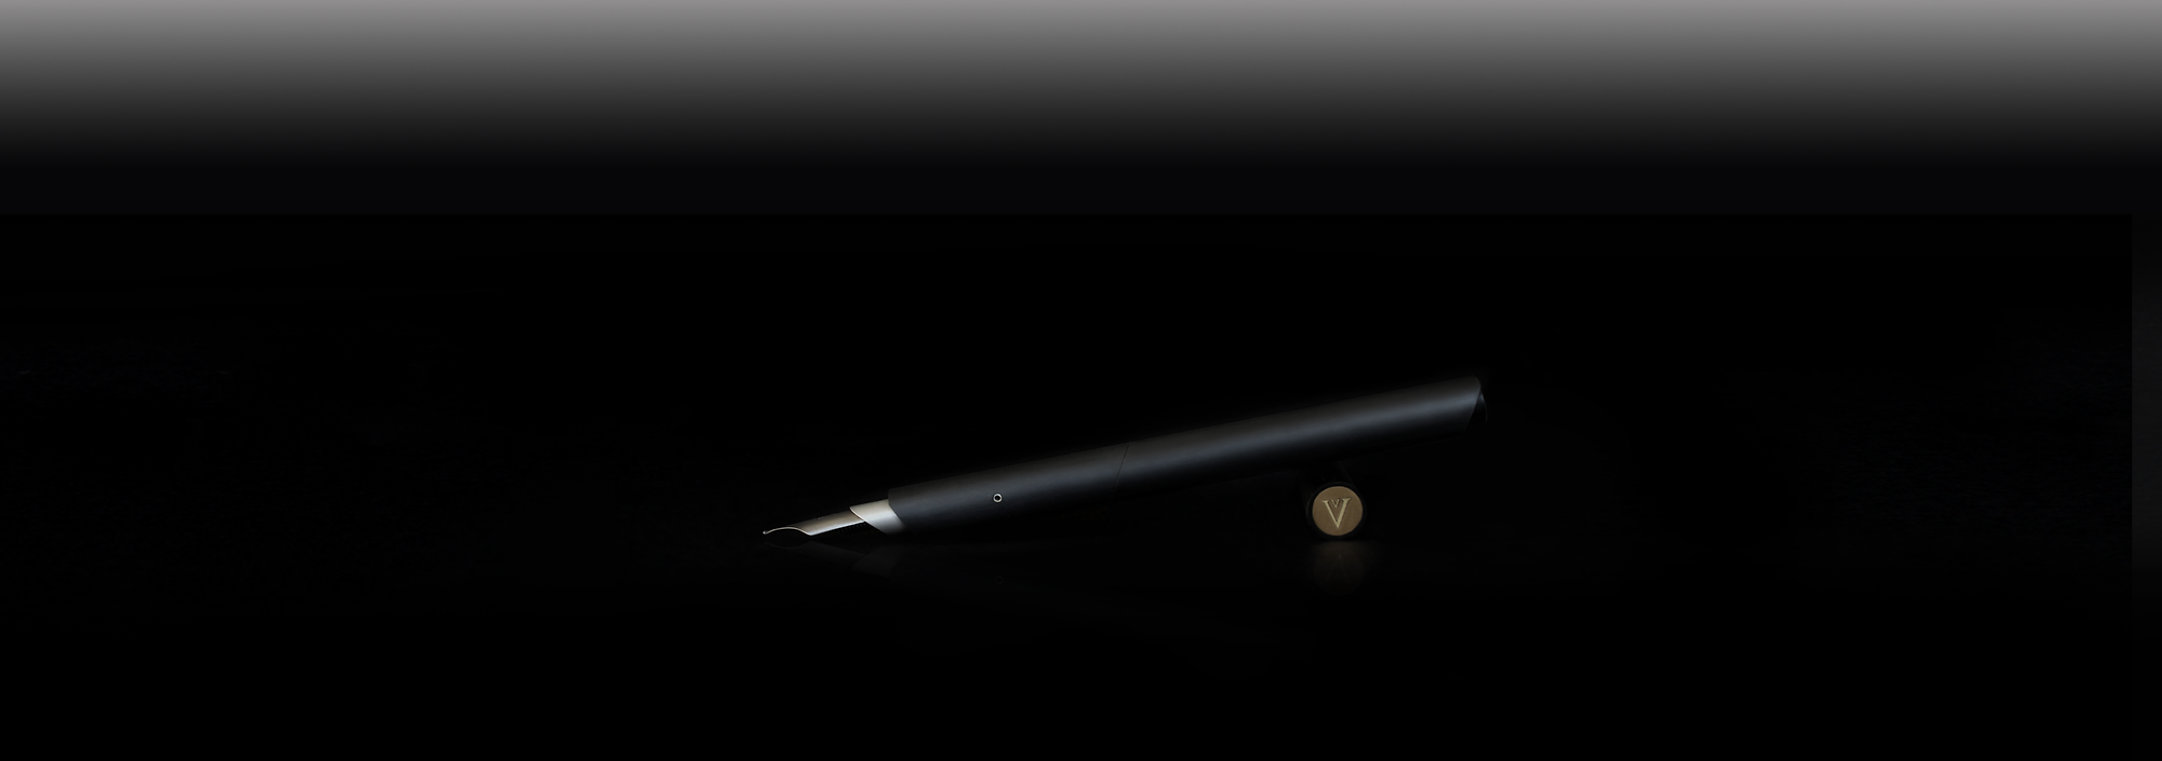 linear carbon fiber fountain pen with converter filler or built in piston filler mechanism titanium gold nibs